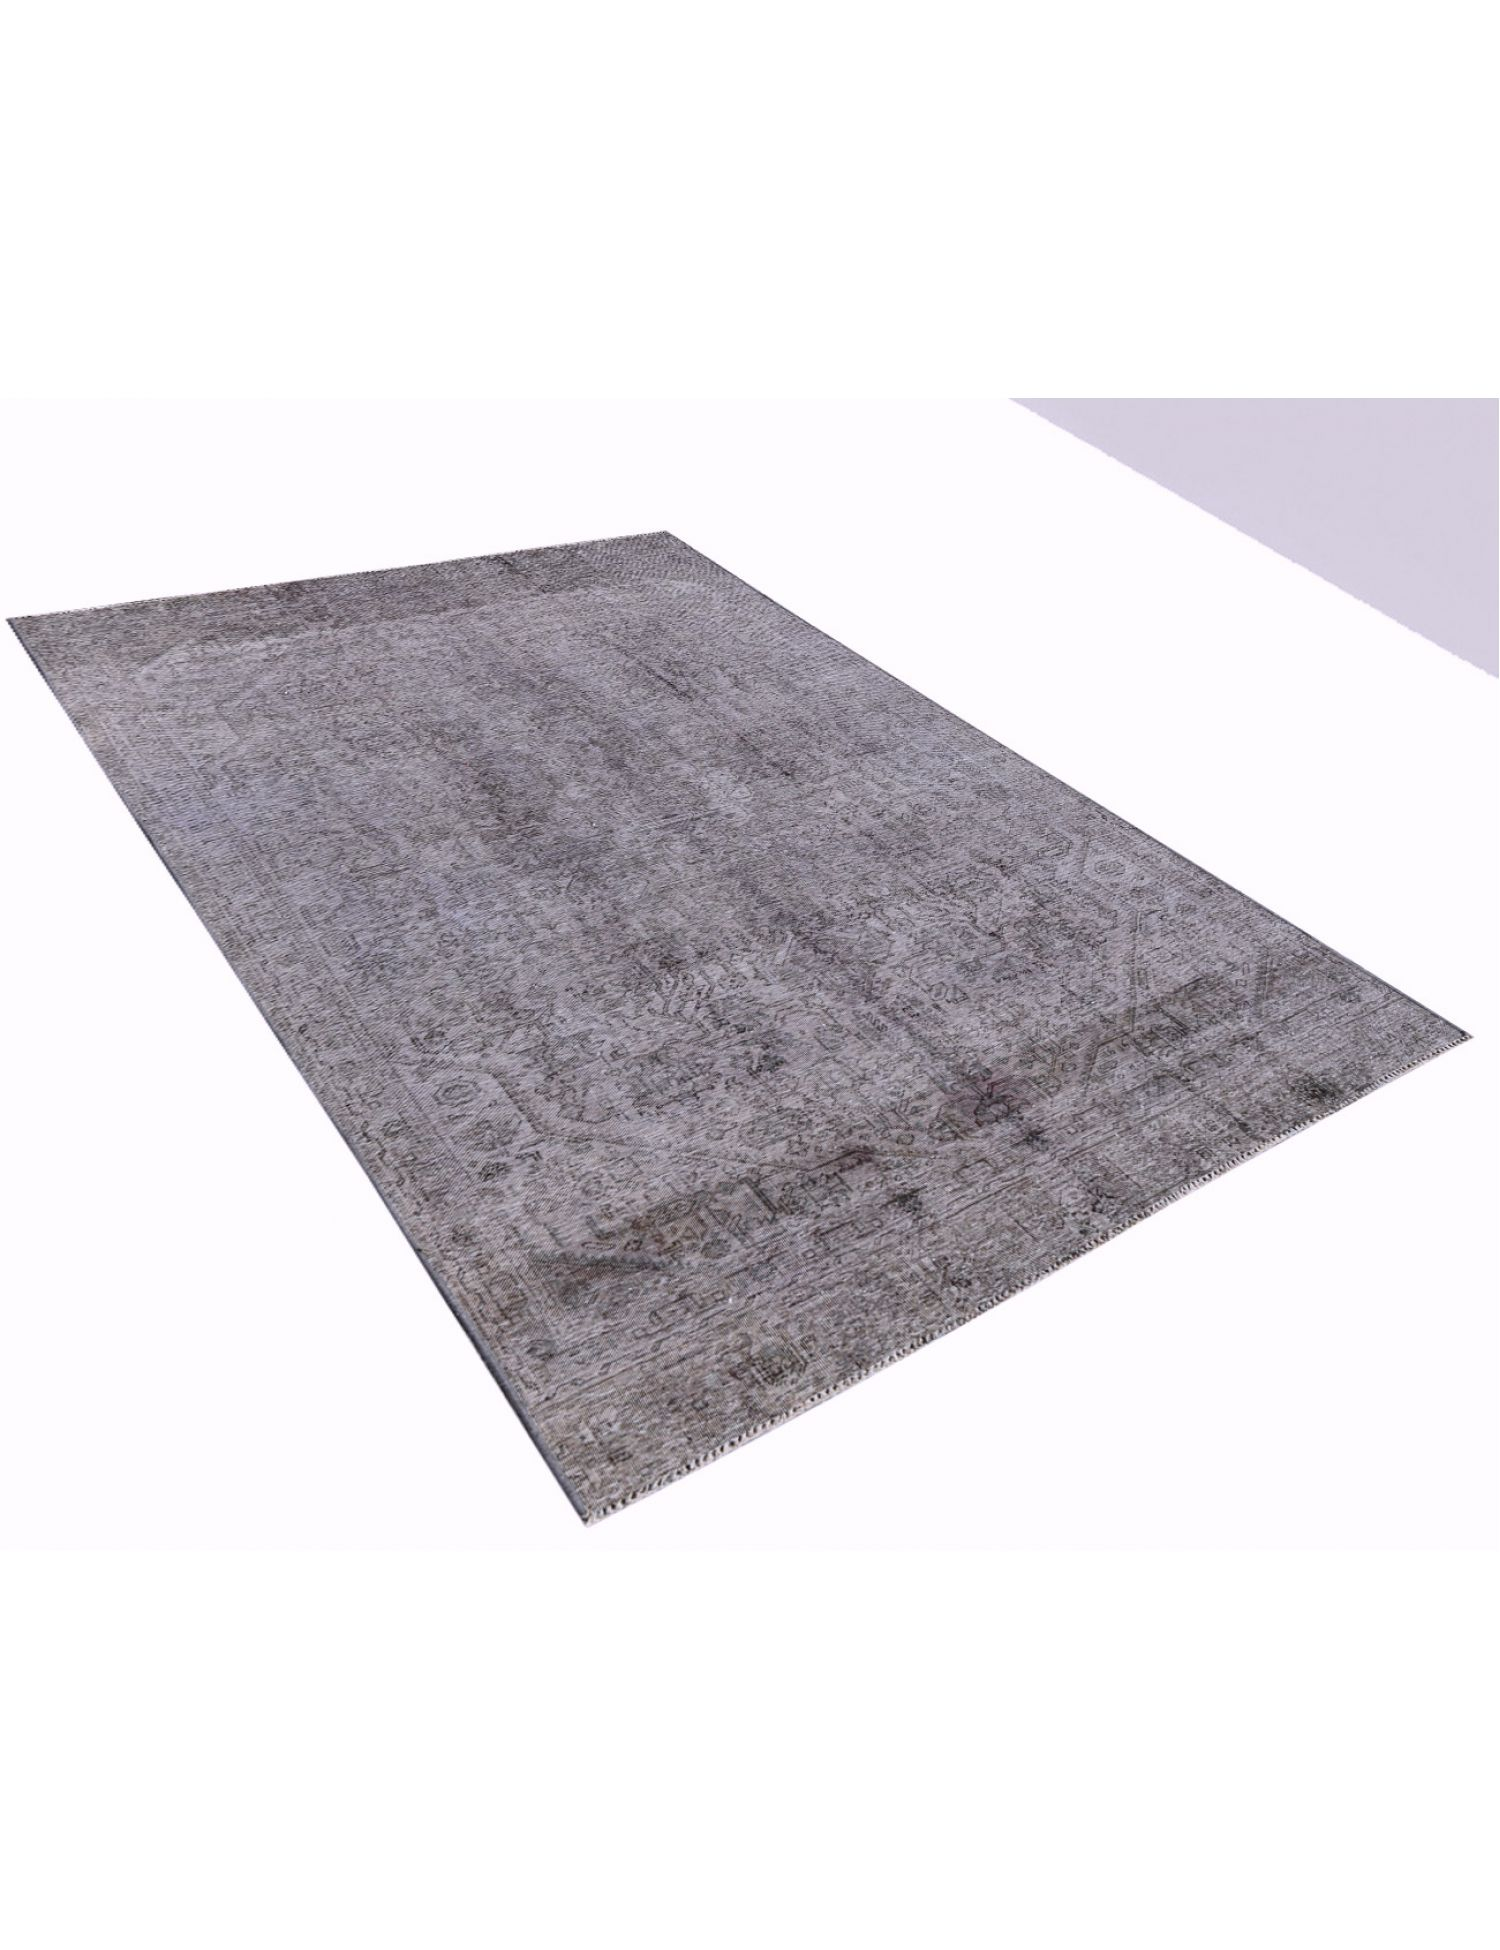 Vintage Carpet  grey <br/>307 x 184 cm